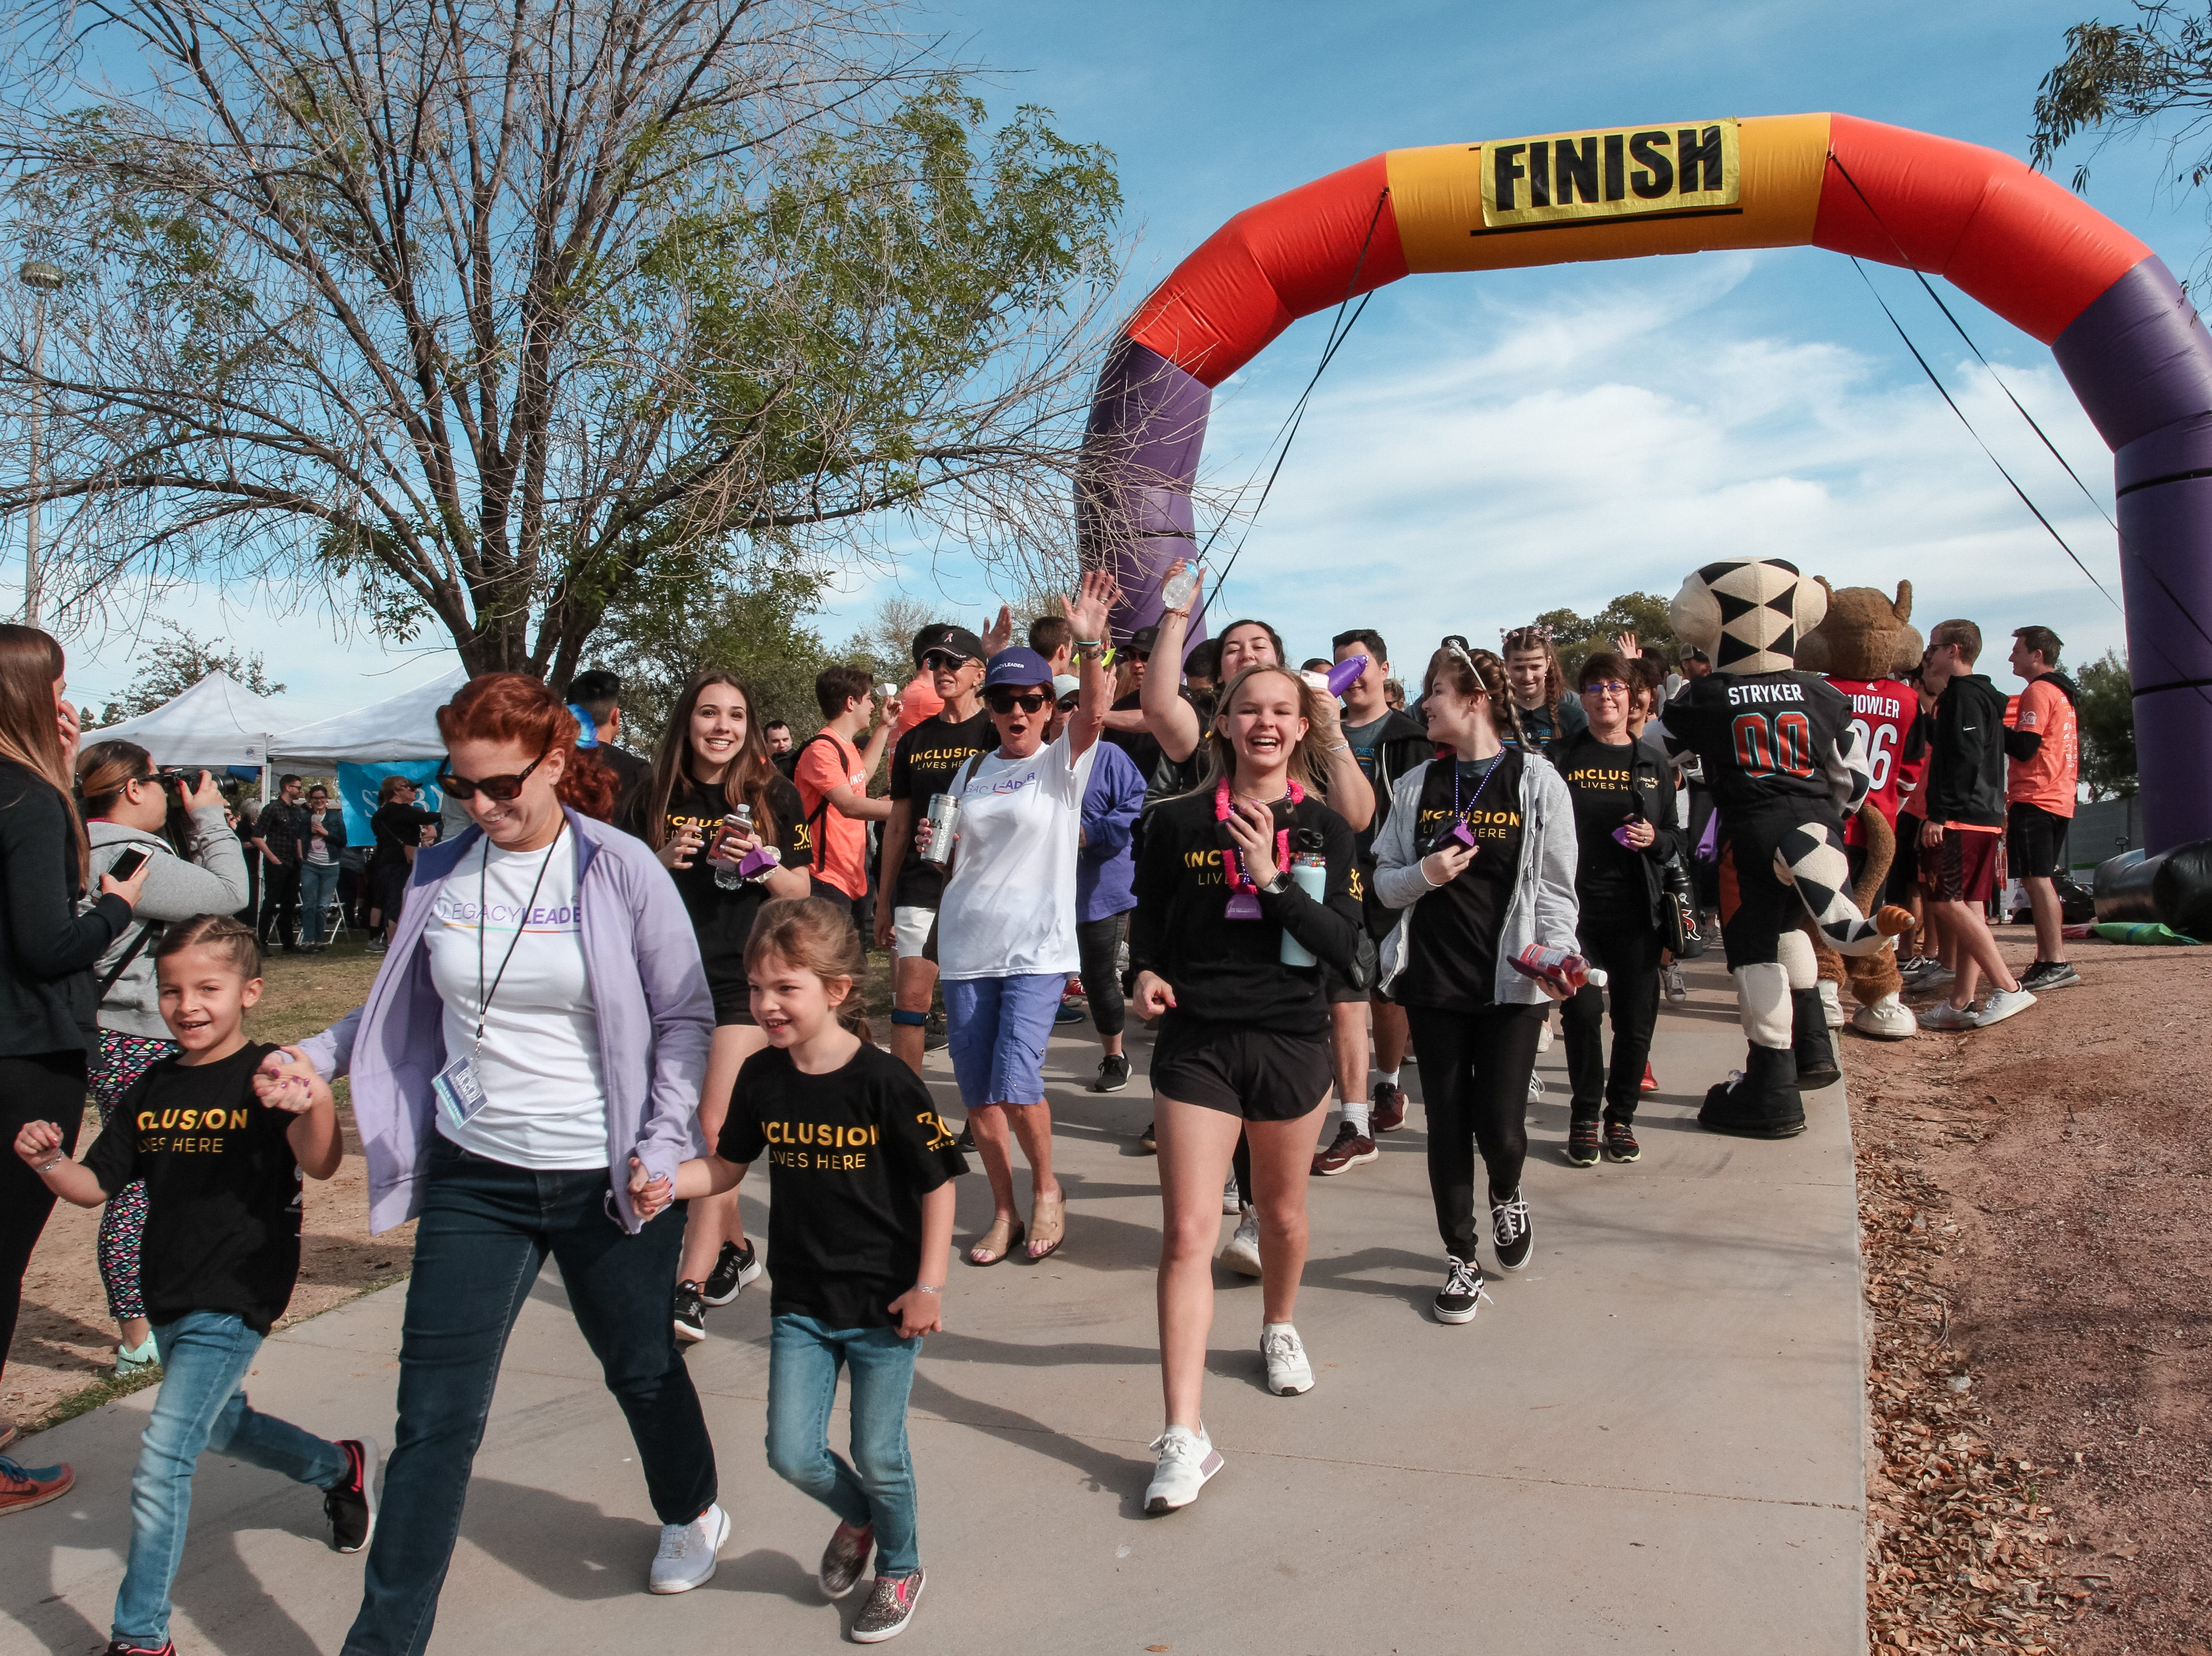 Participants begin walking at The Best Buddies Friendship Walk at Kiwanis Park in Tempe on March 23, 2019.